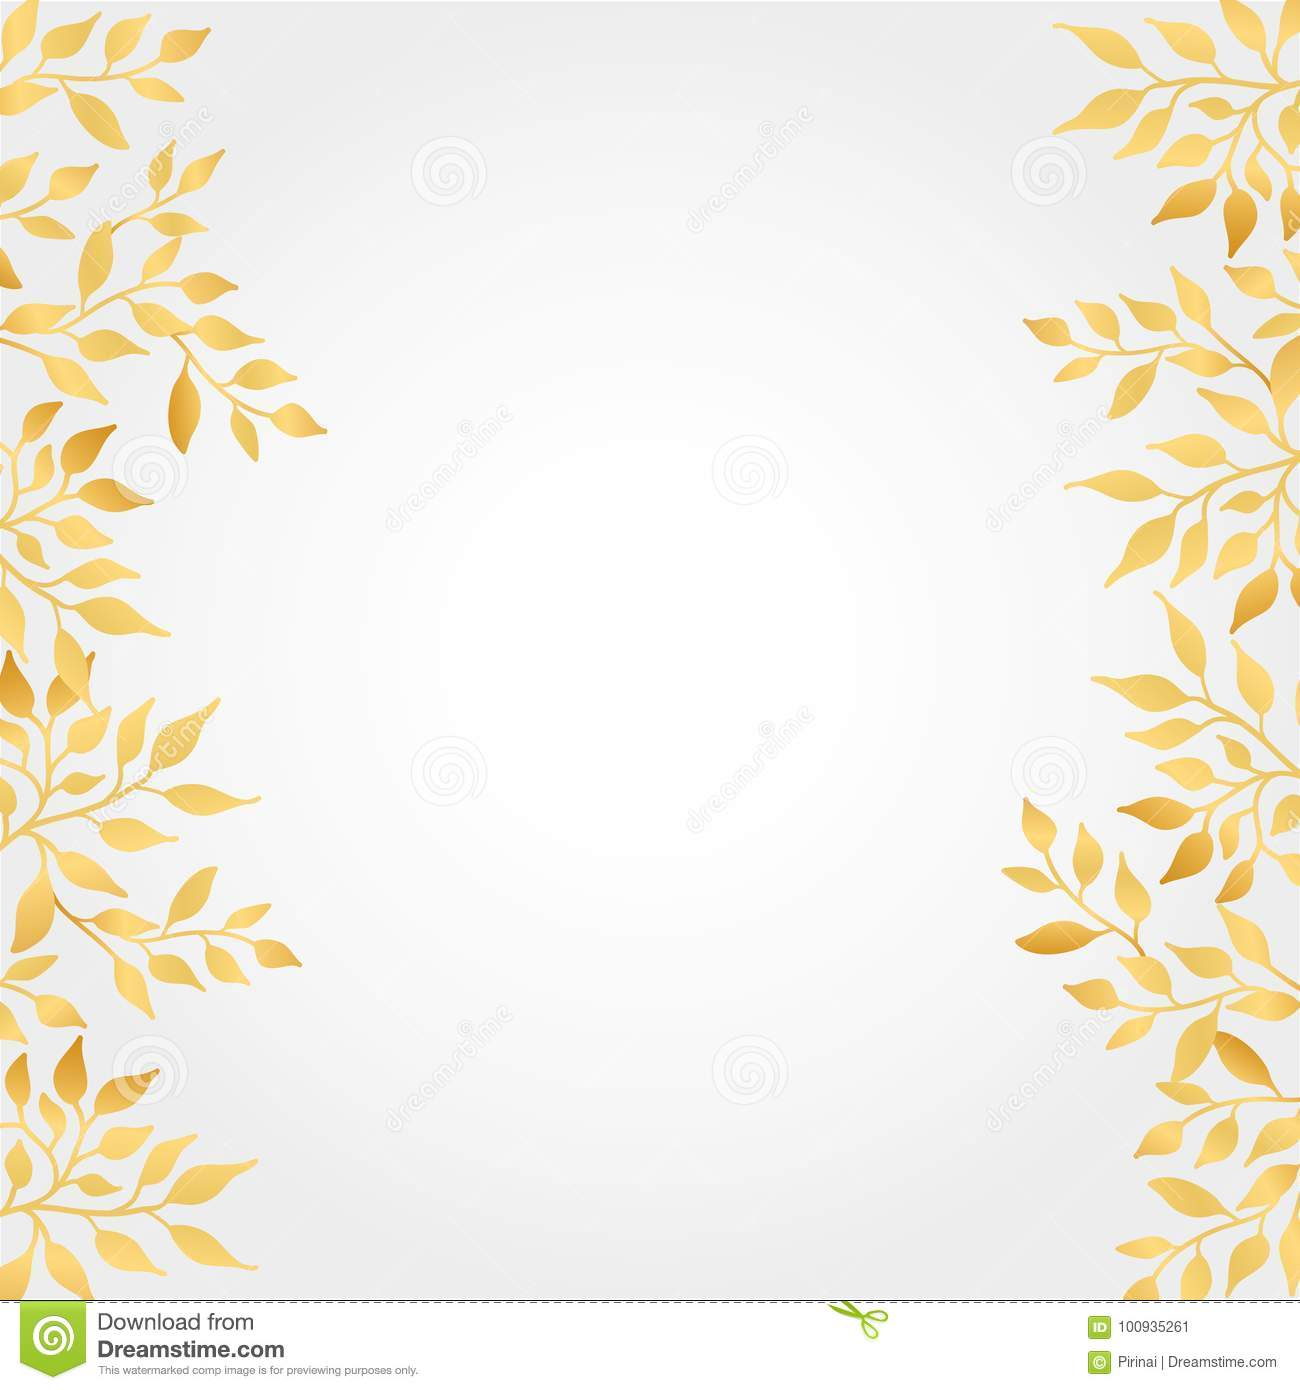 Gold Autumn Leaves Background Stock Vector Illustration Of Leaf